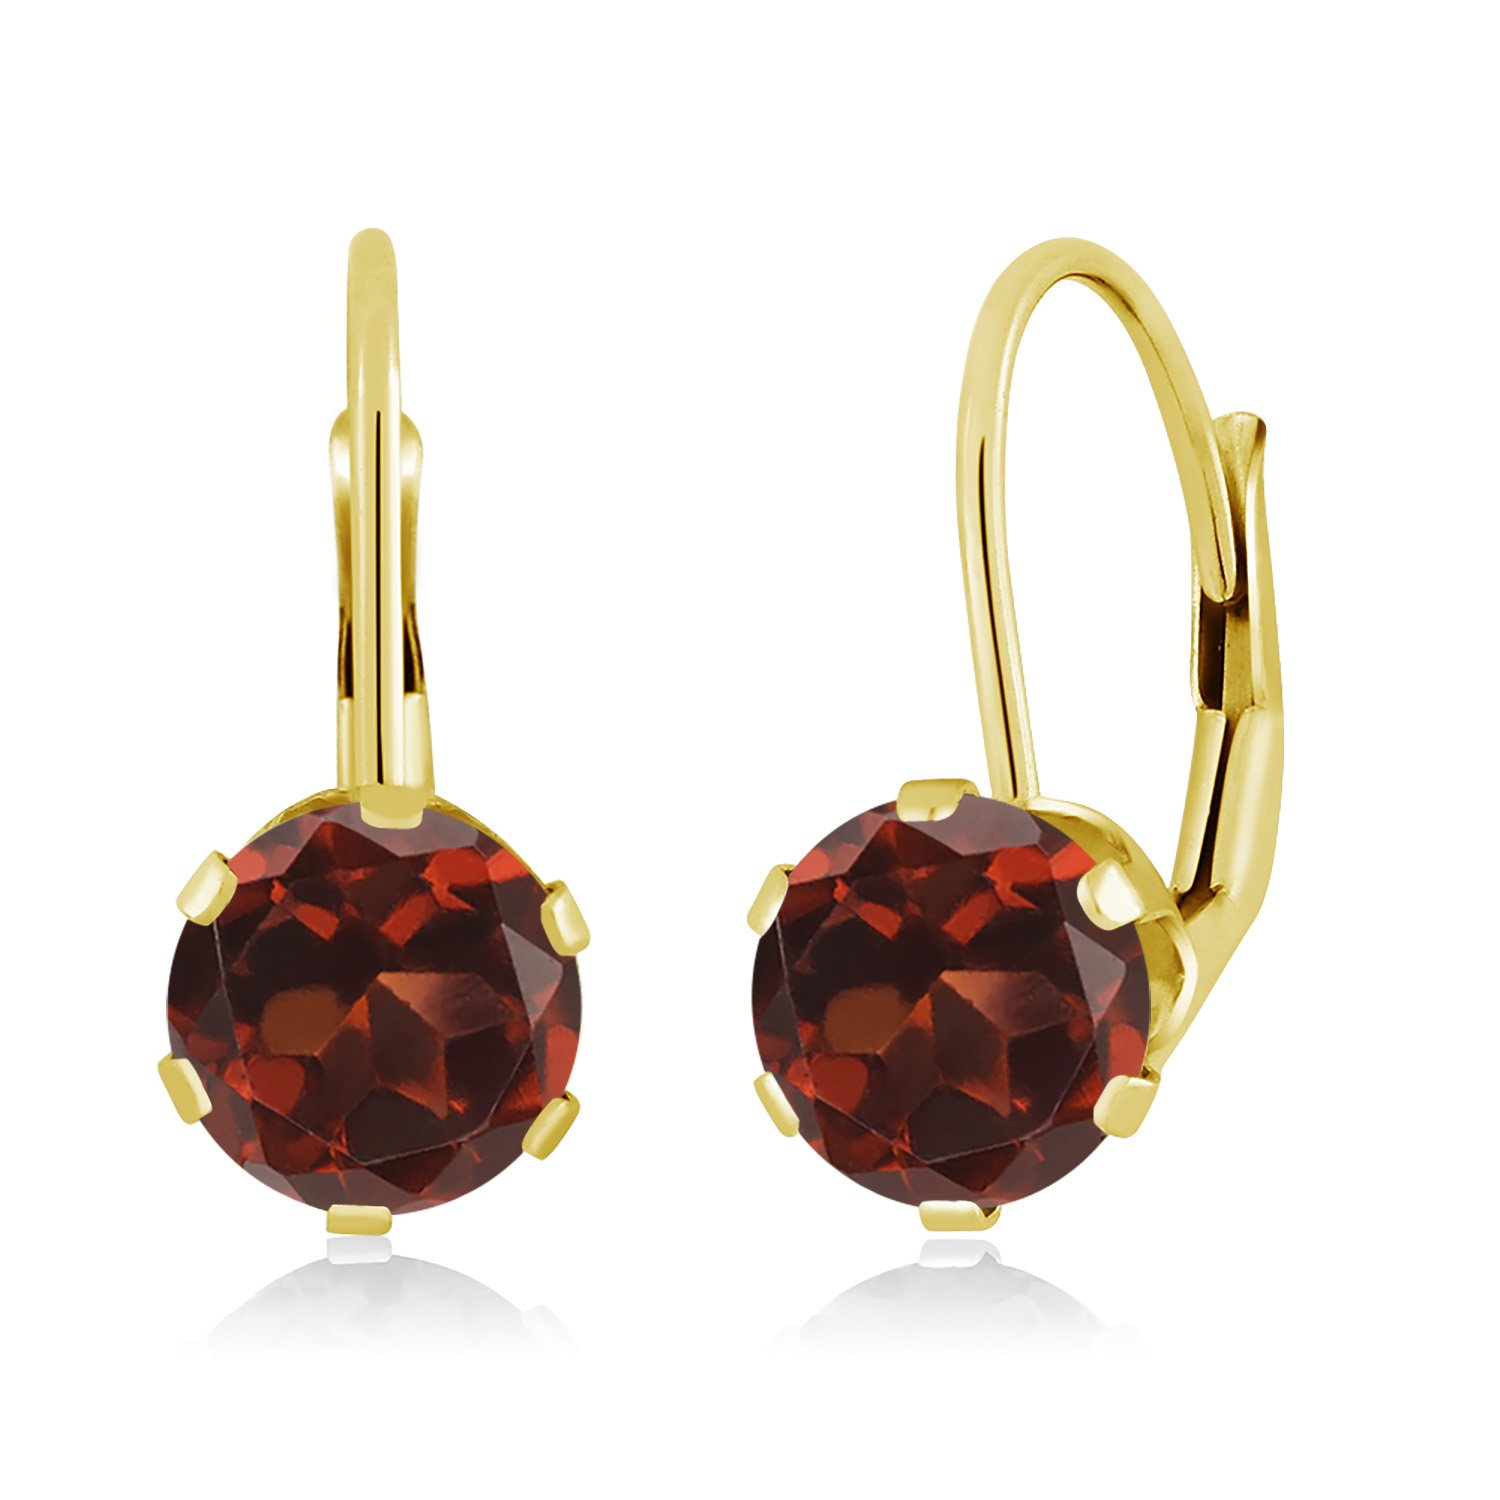 Gem Stone King 14K Yellow Gold Red Garnet Women's Earrings 2.00 Ctw Gemstone Birthstone Round 6MM by Gem Stone King